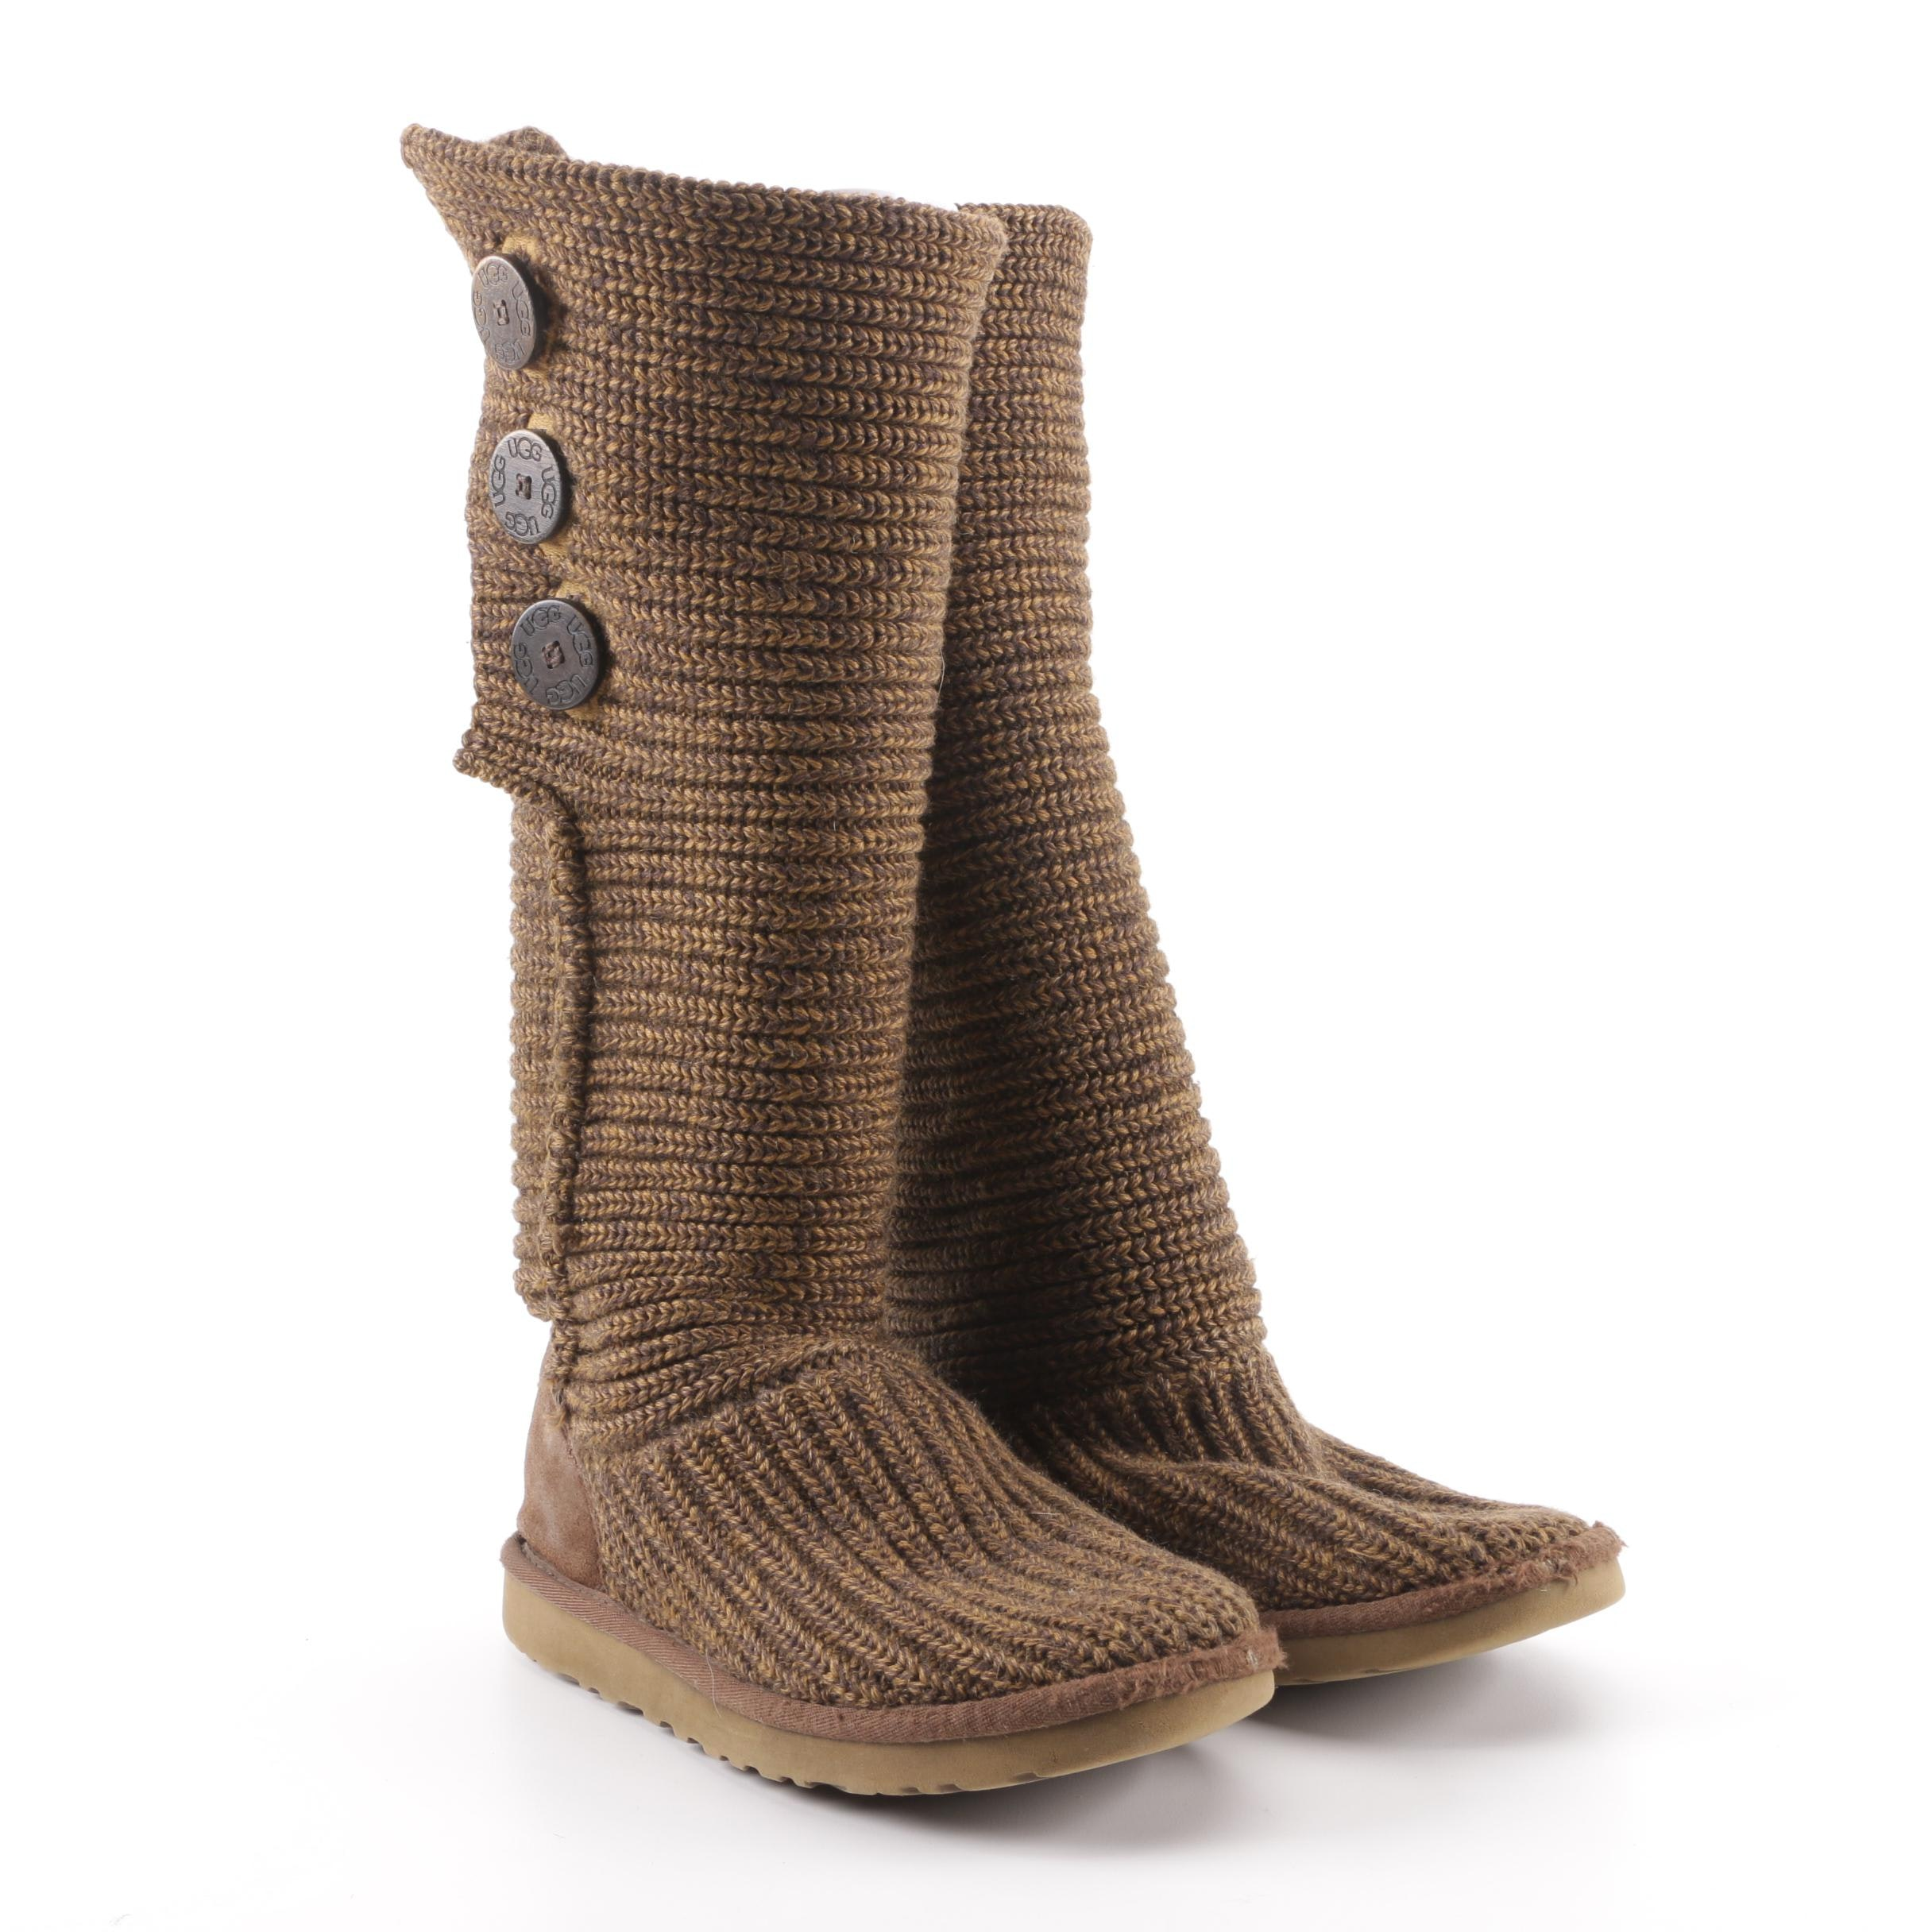 Women's UGG Australia Classic Cardy Brown Knit Boots